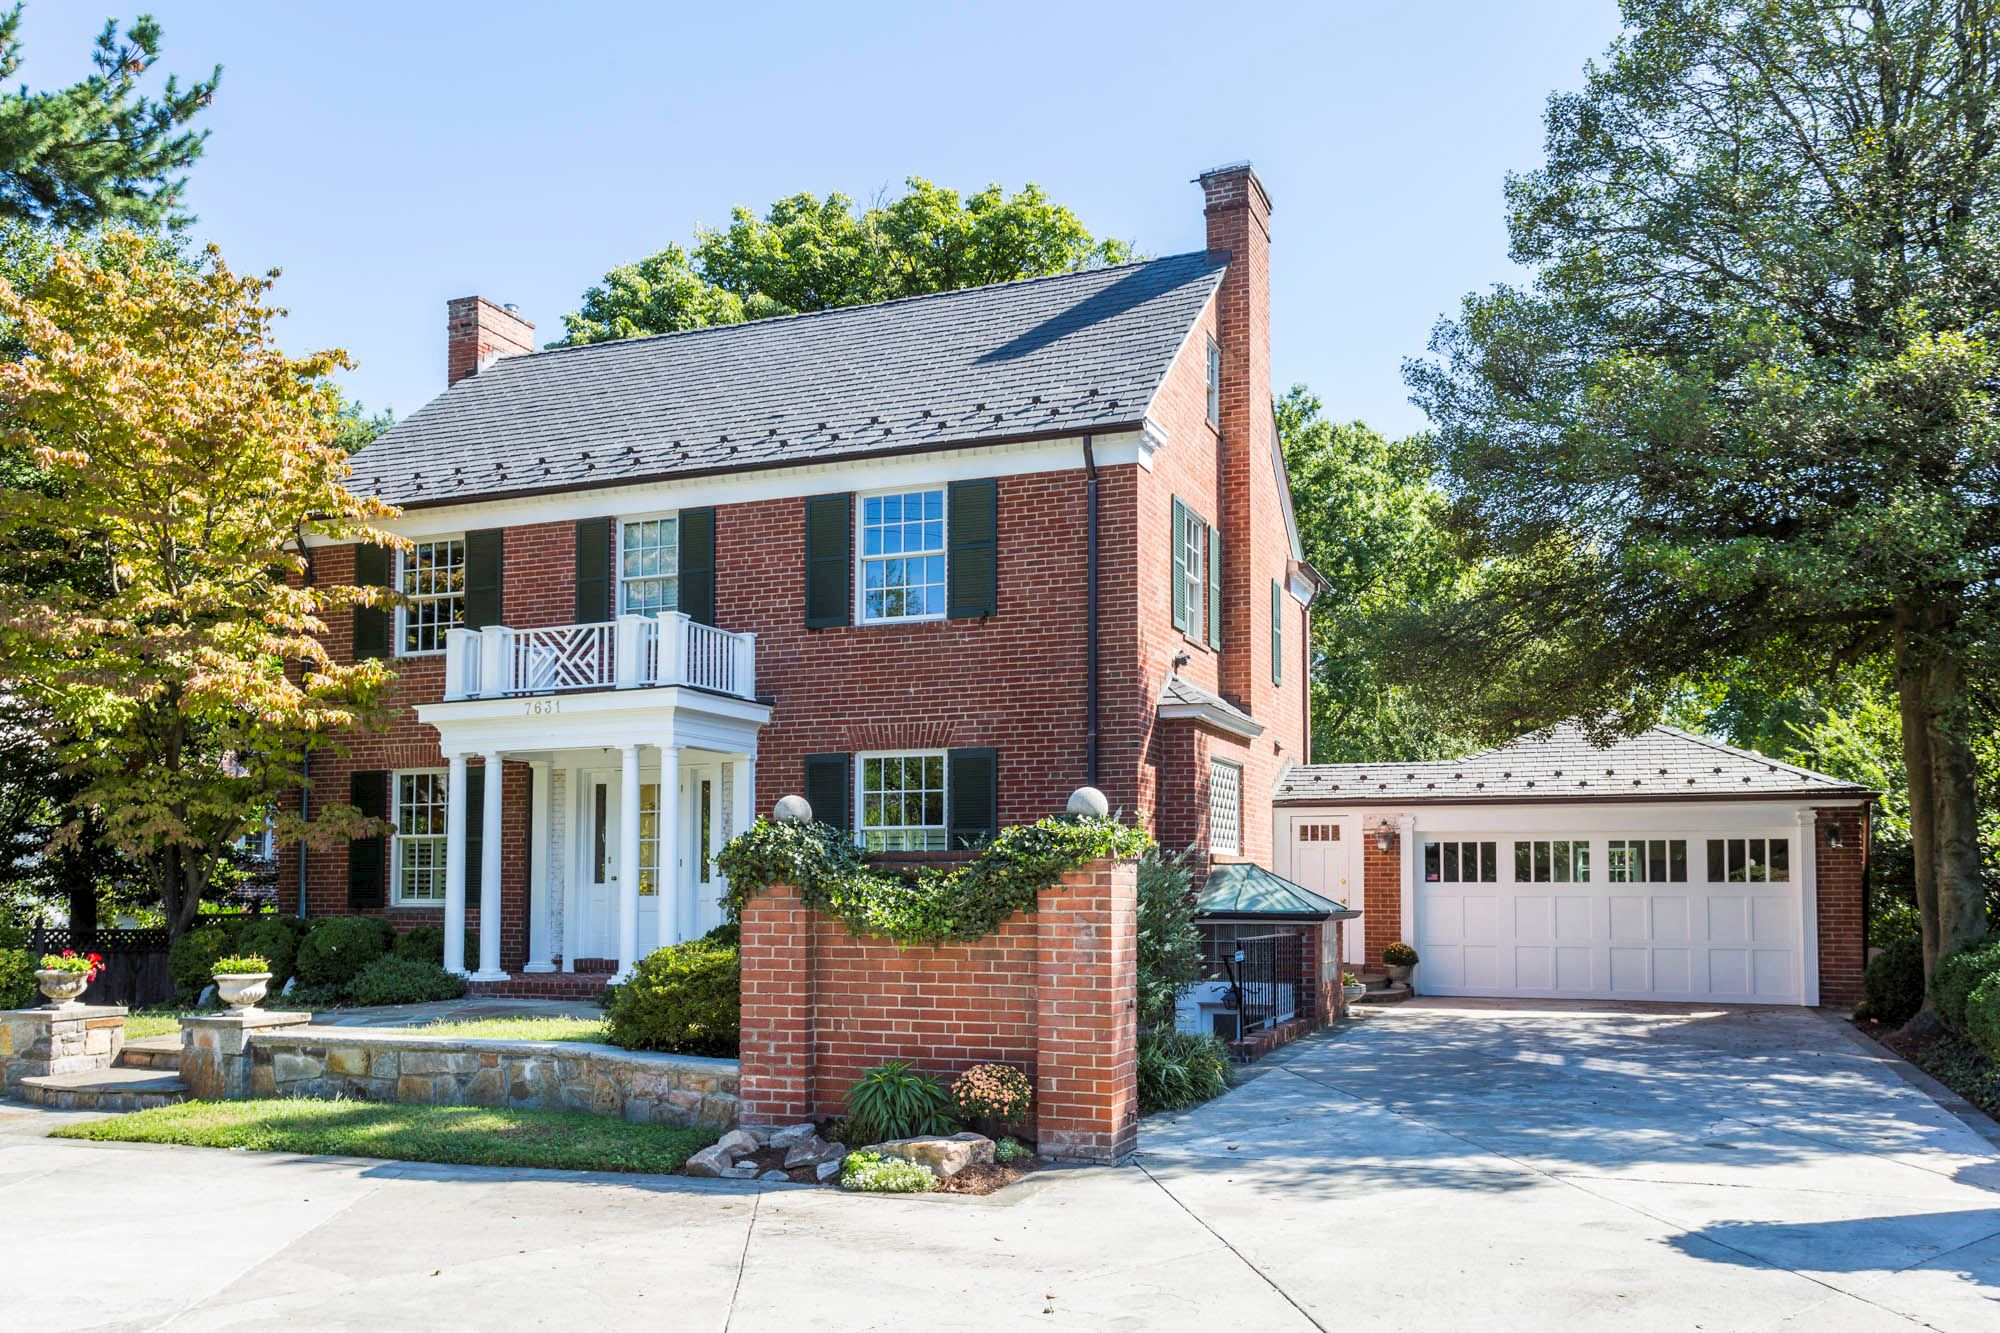 7631 connecticut ave chevy chase md 20815 - Maison ecologique maryland chavy chase ...